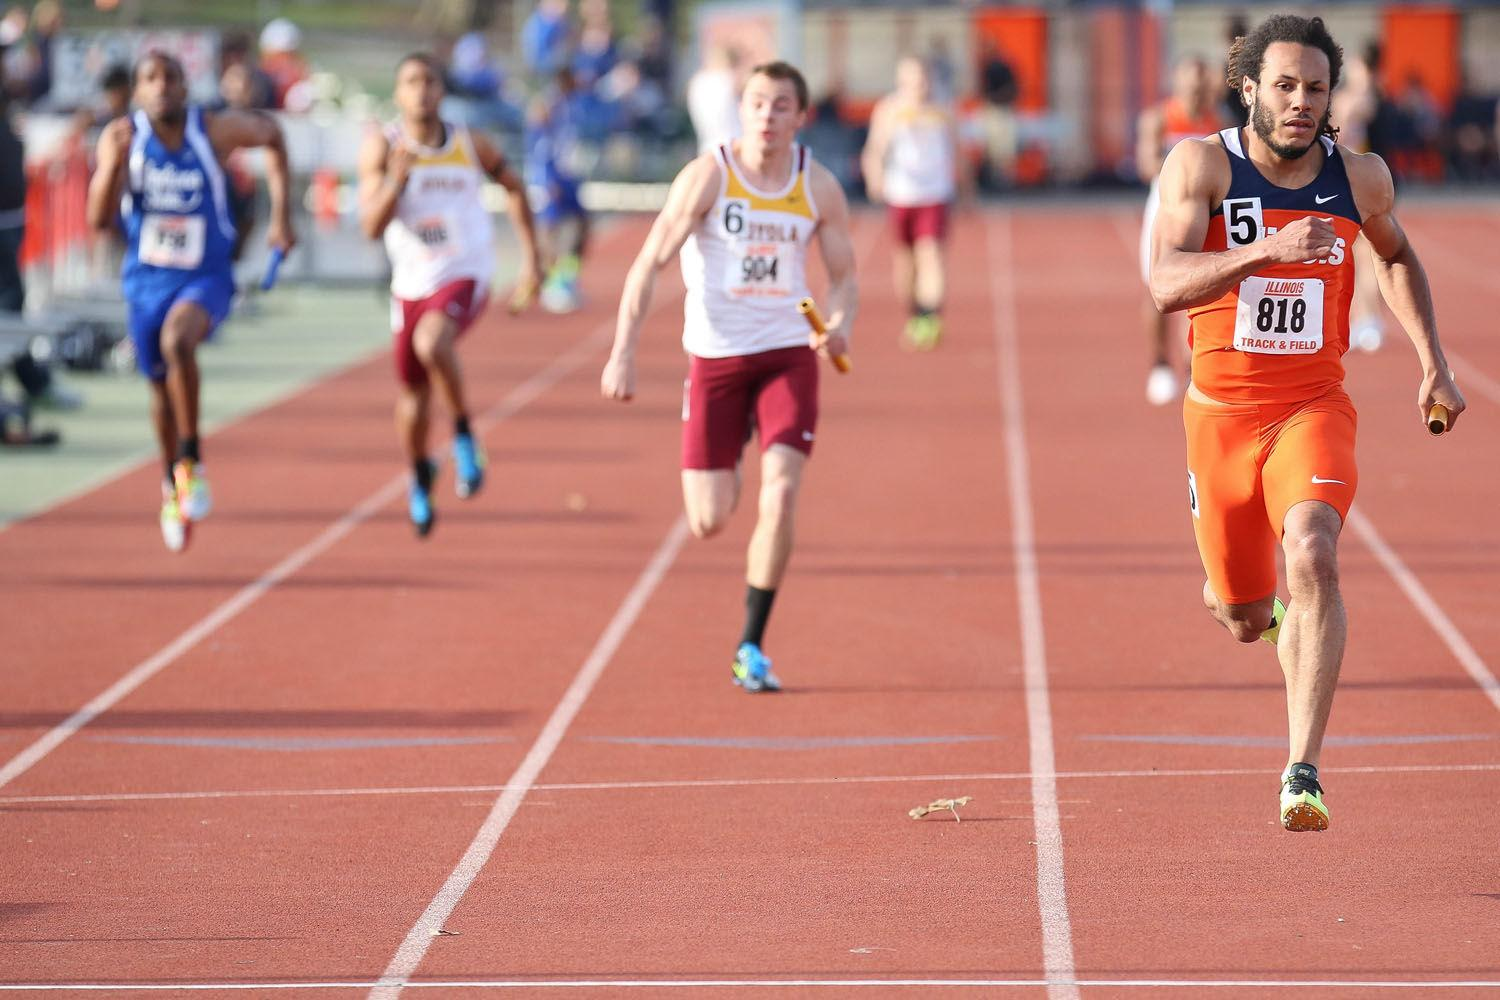 Illinois' DJ Zahn, pictured in a meet from April 2014, was part of the 4x400 meter relay that finished with a time of 3 minutes and 6.58 seconds, the fourth-best time of the NCAA Indoor Championships over the weekend.